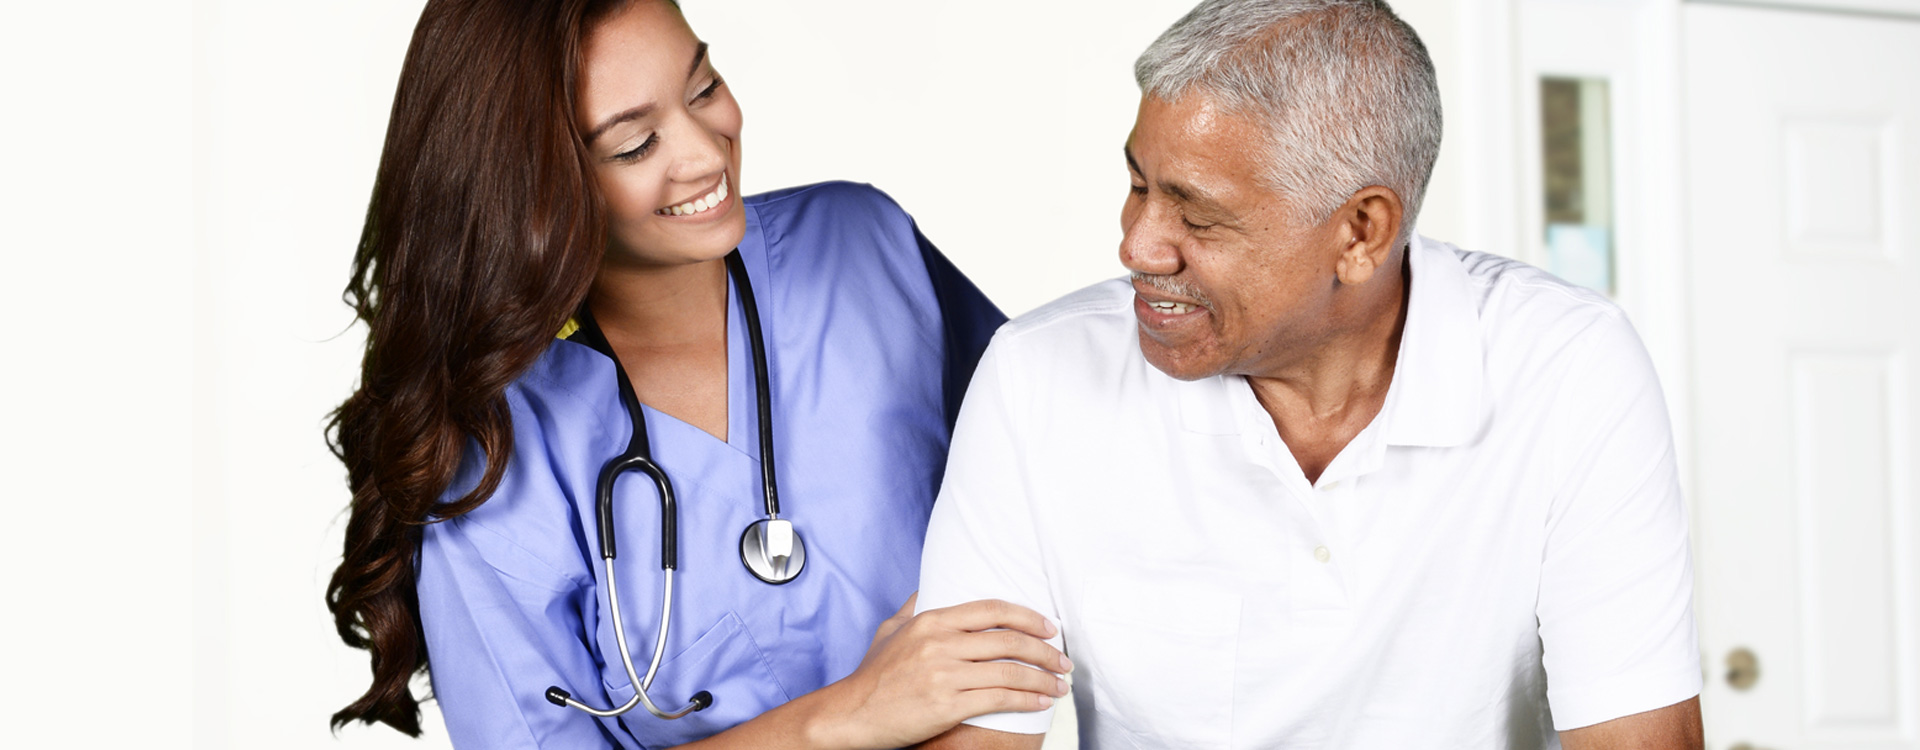 home health care vs nursing homes Nursing home facility nursing homes have nurses, most likely rn's, and certified nurse's assistants,  long term care facility vs home health care nursing by:.